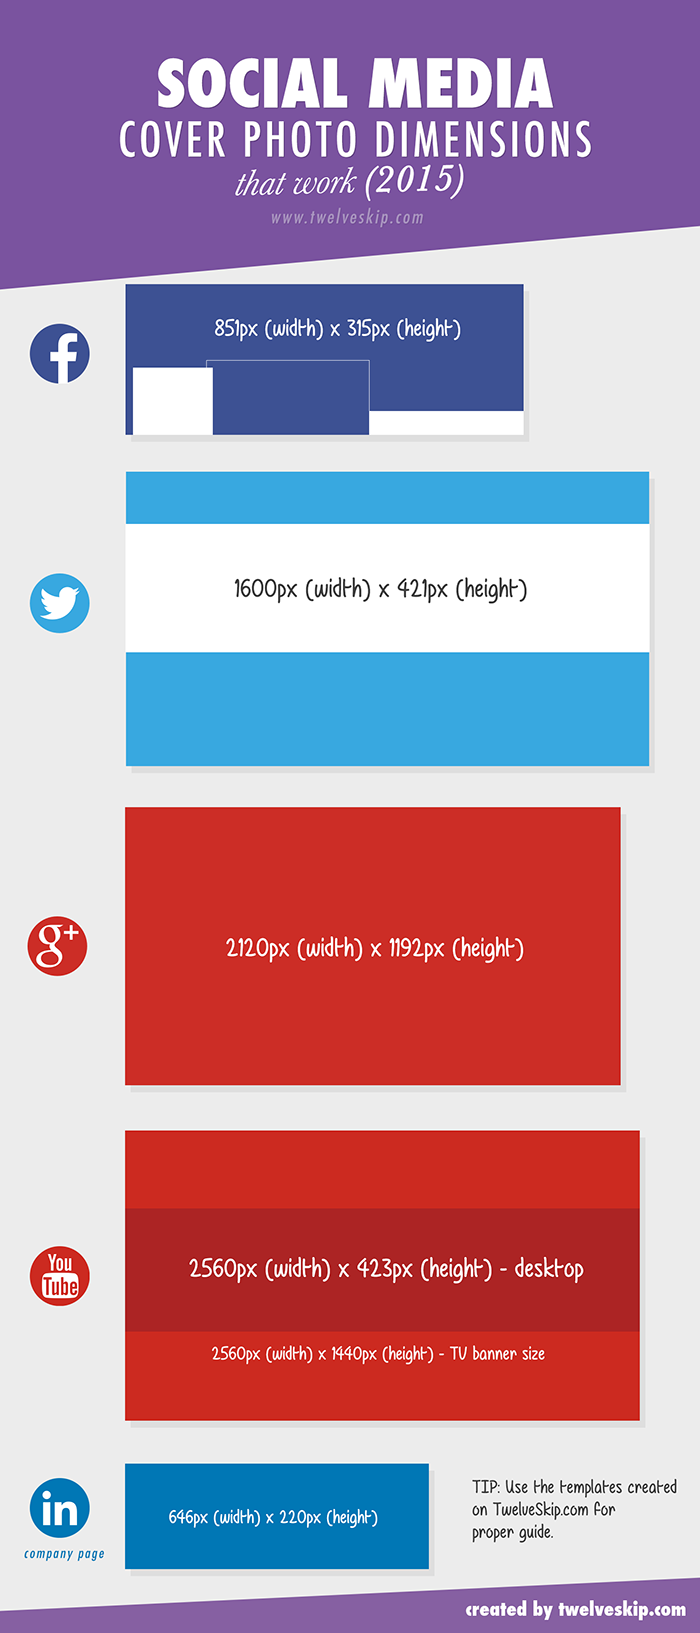 social media cheat sheet image sizes